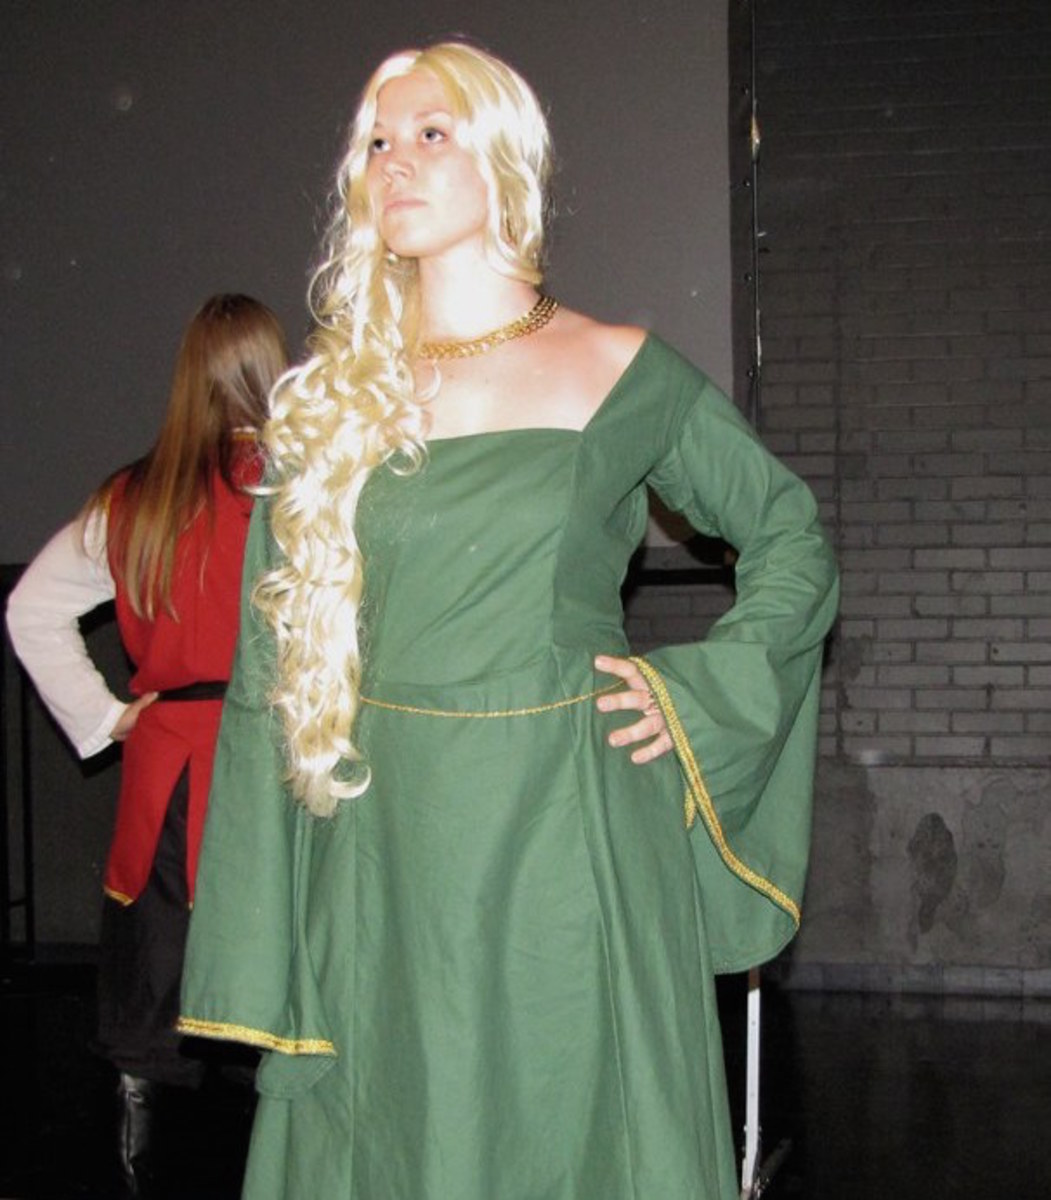 This woman made her own Cersei dress in a lovely shade of green.